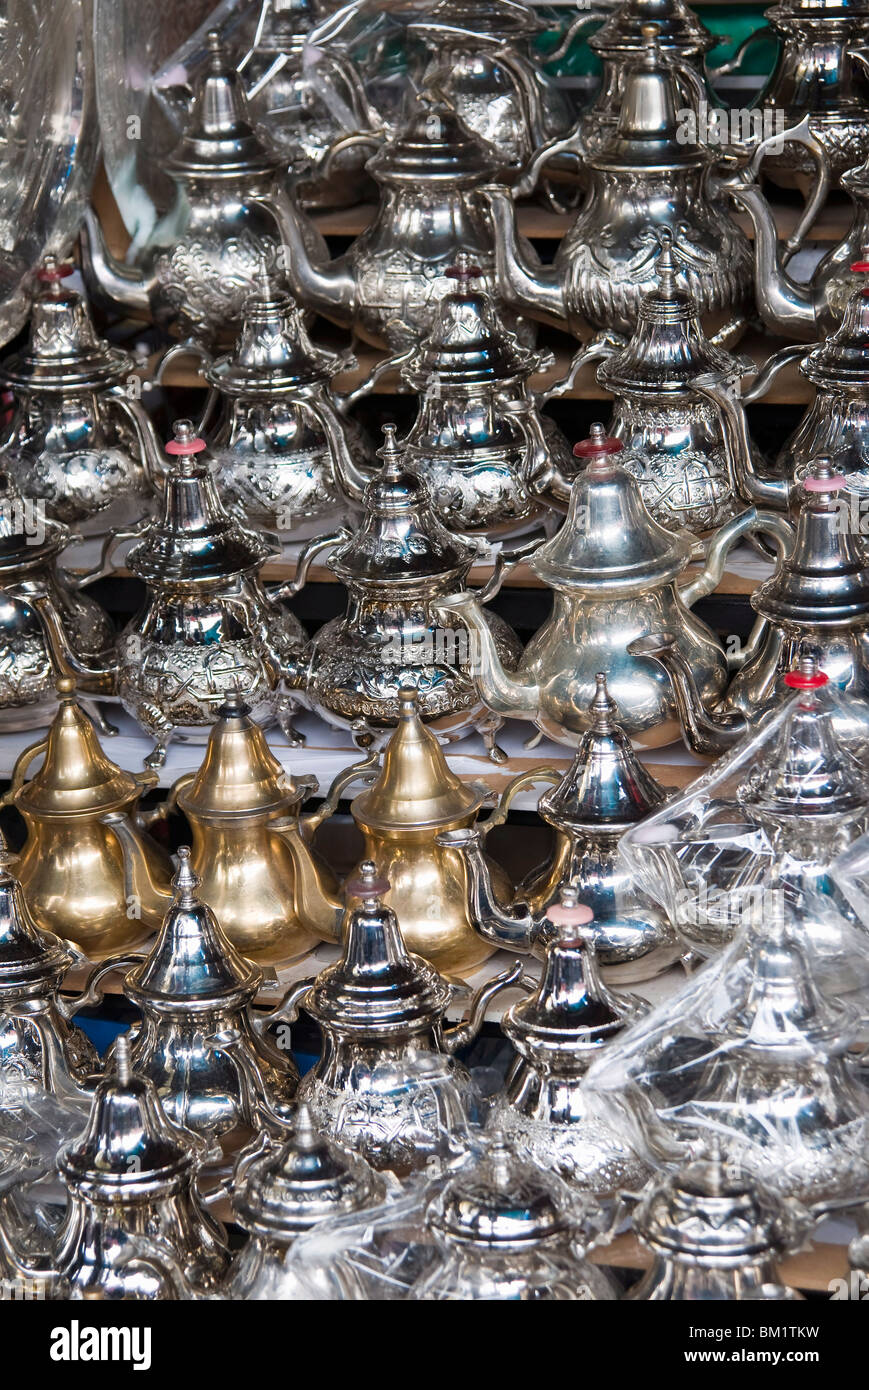 Teapots for sale in the souk, Medina, Marrakech (Marrakesh), Morocco, North Africa, Africa - Stock Image